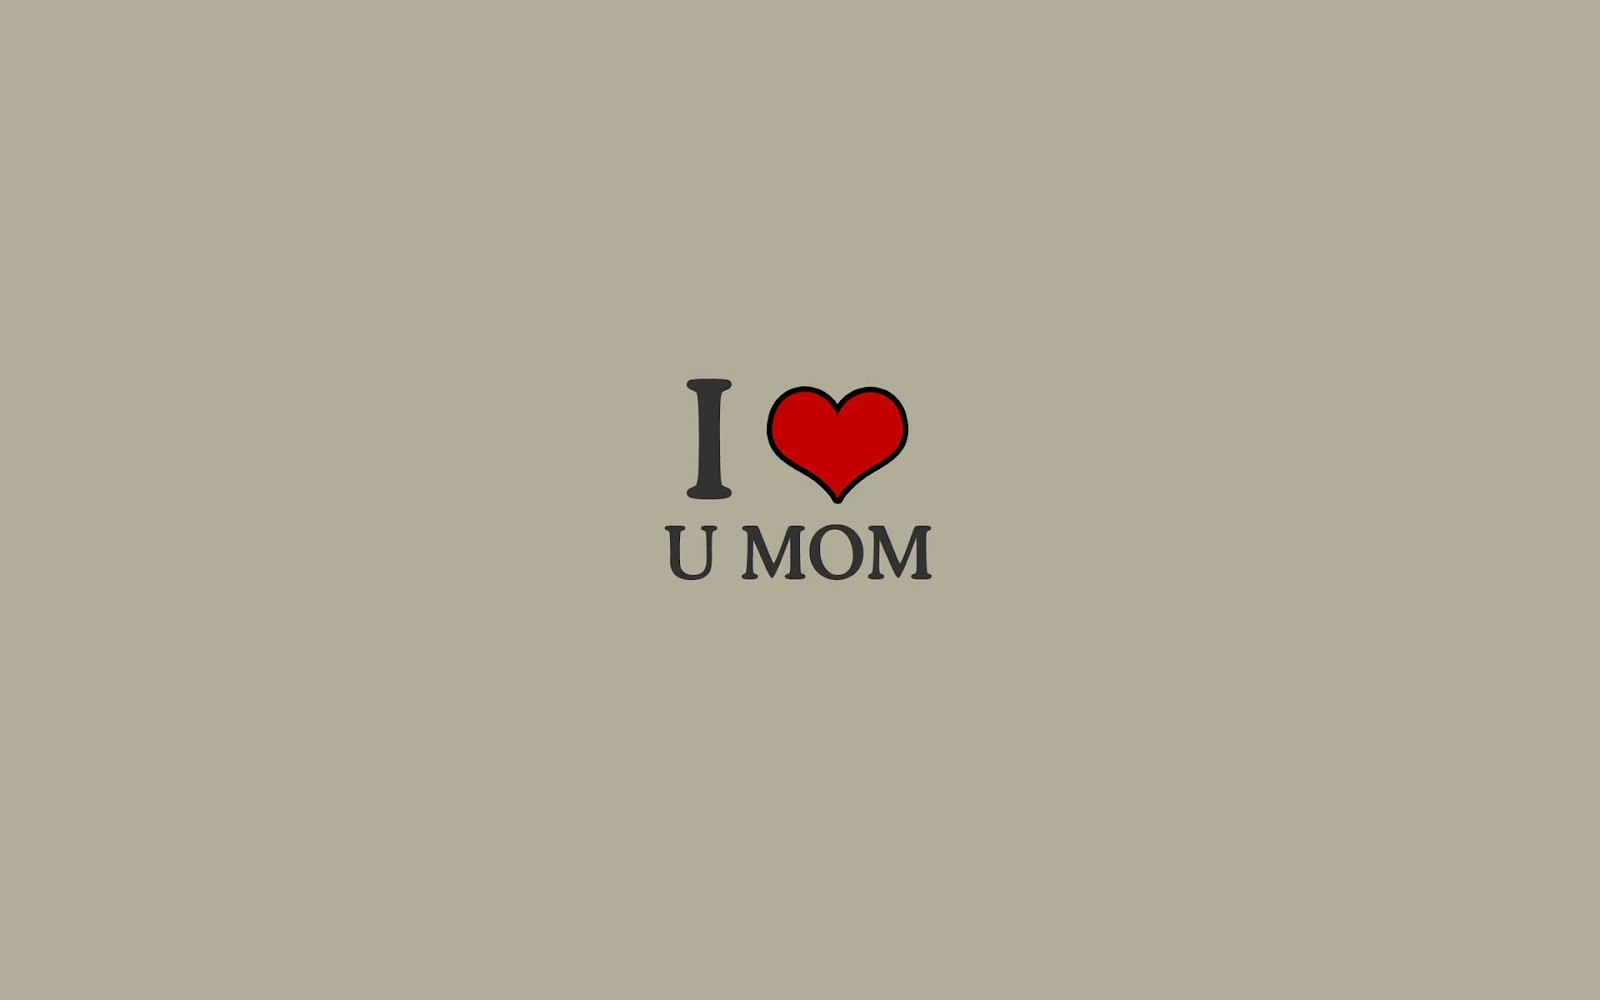 I Love You Mom Desktop Wallpapers Desktop Background 1600x1000